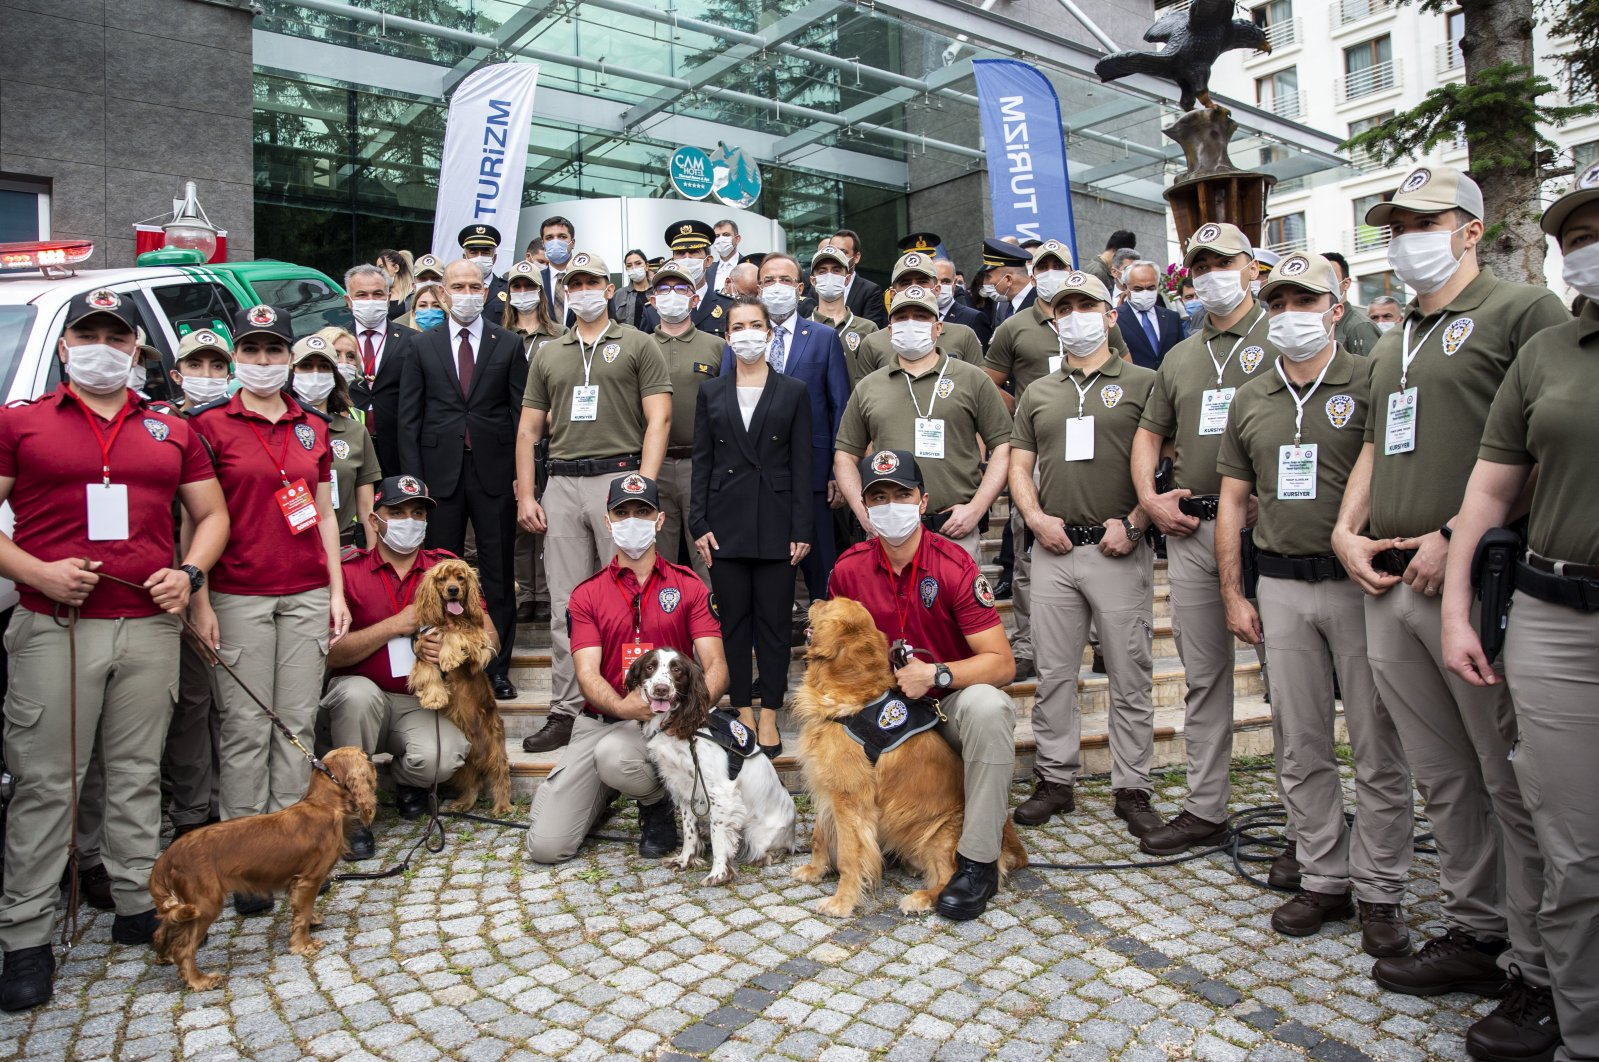 Trainees of the nature and animal police pose with Interior Minister Süleyman Soylu and police dogs, in Ankara, Turkey, July 8, 2020. (AA Photo)